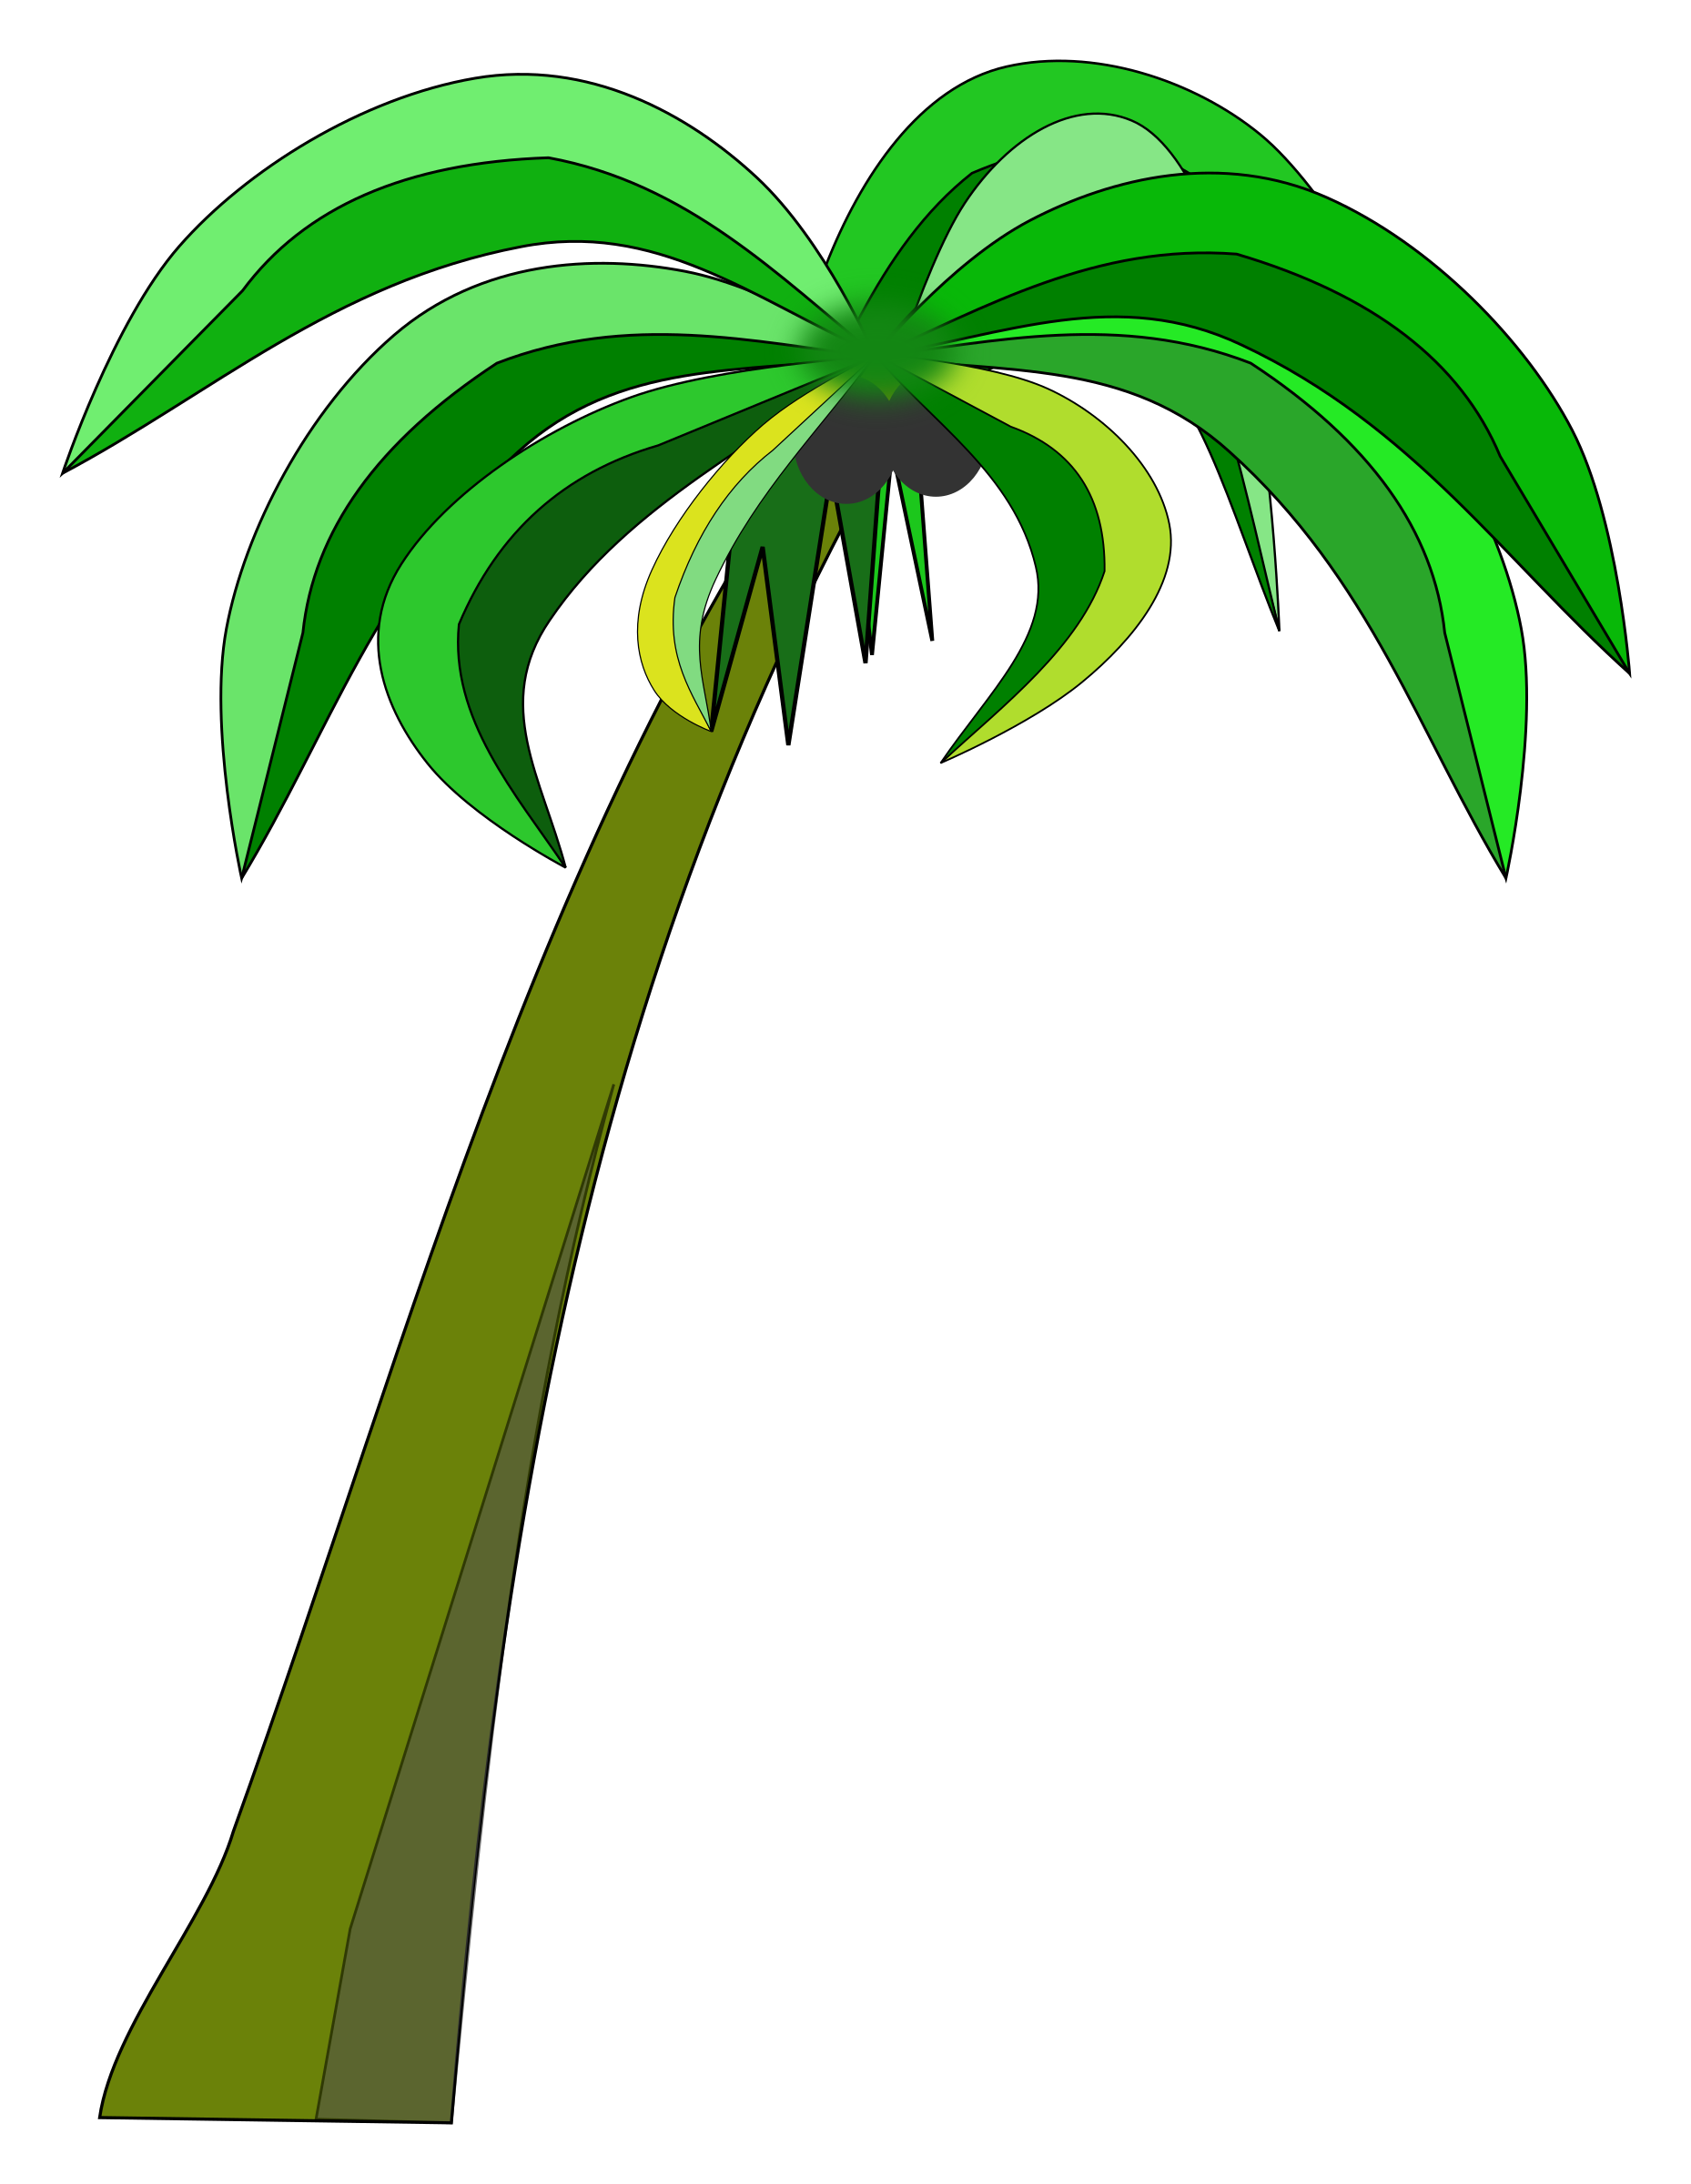 Palm tree with coconuts clipart banner library Clipart - Palm or Coconut Tree banner library